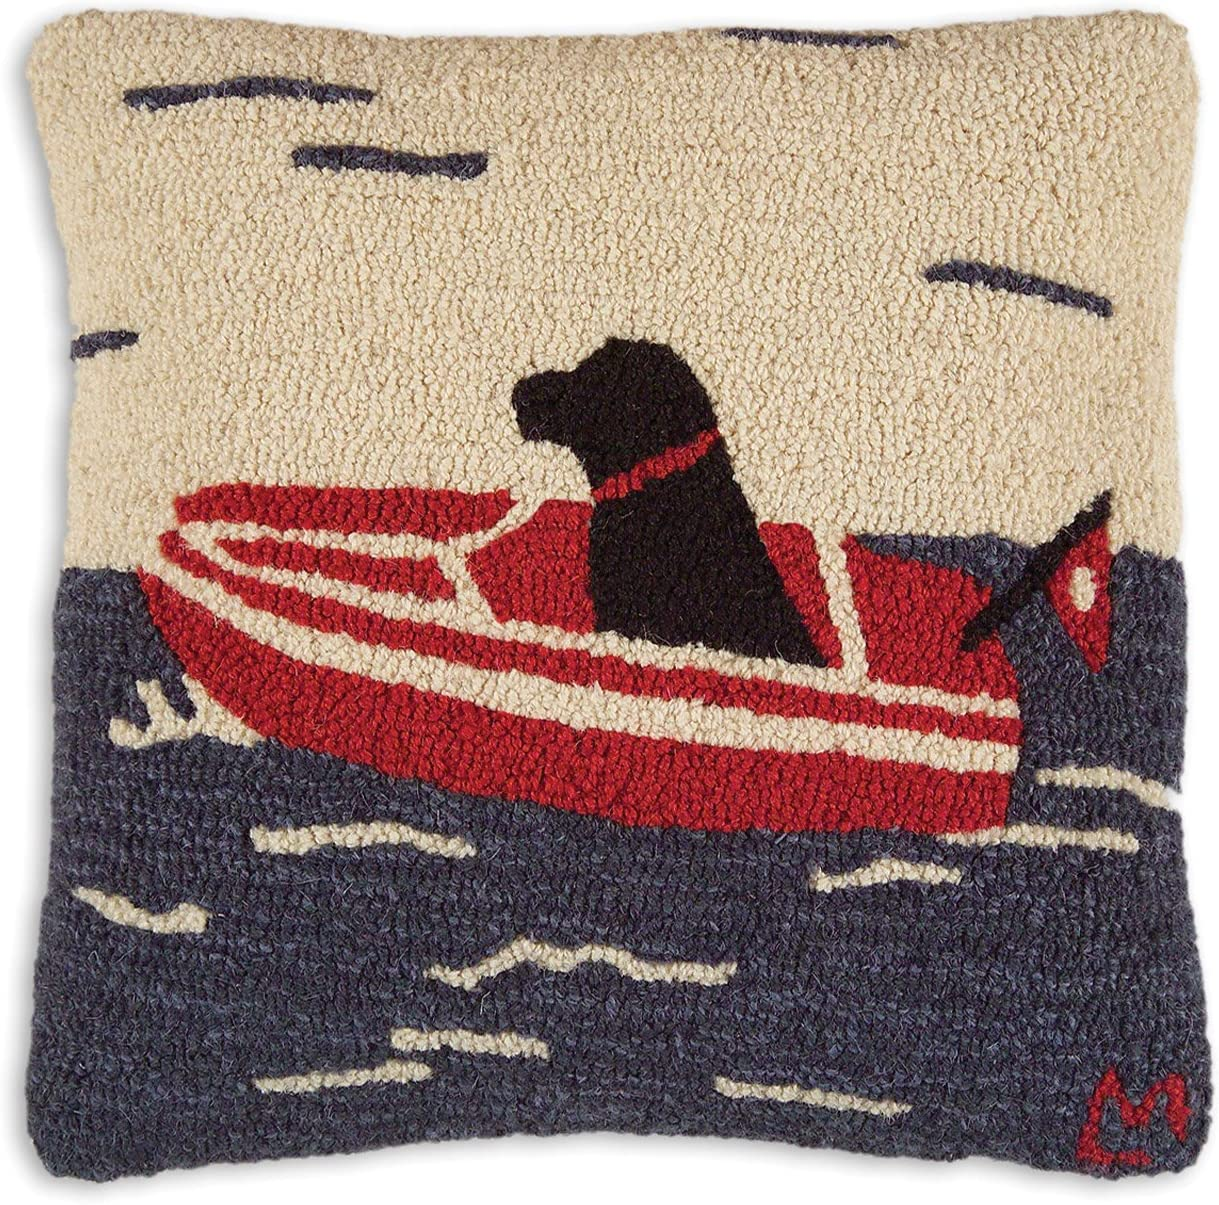 Chandler 4 Corners Artist-Designed Seadog Boating Hand-Hooked Wool Decorative Throw Pillow 18 x 18